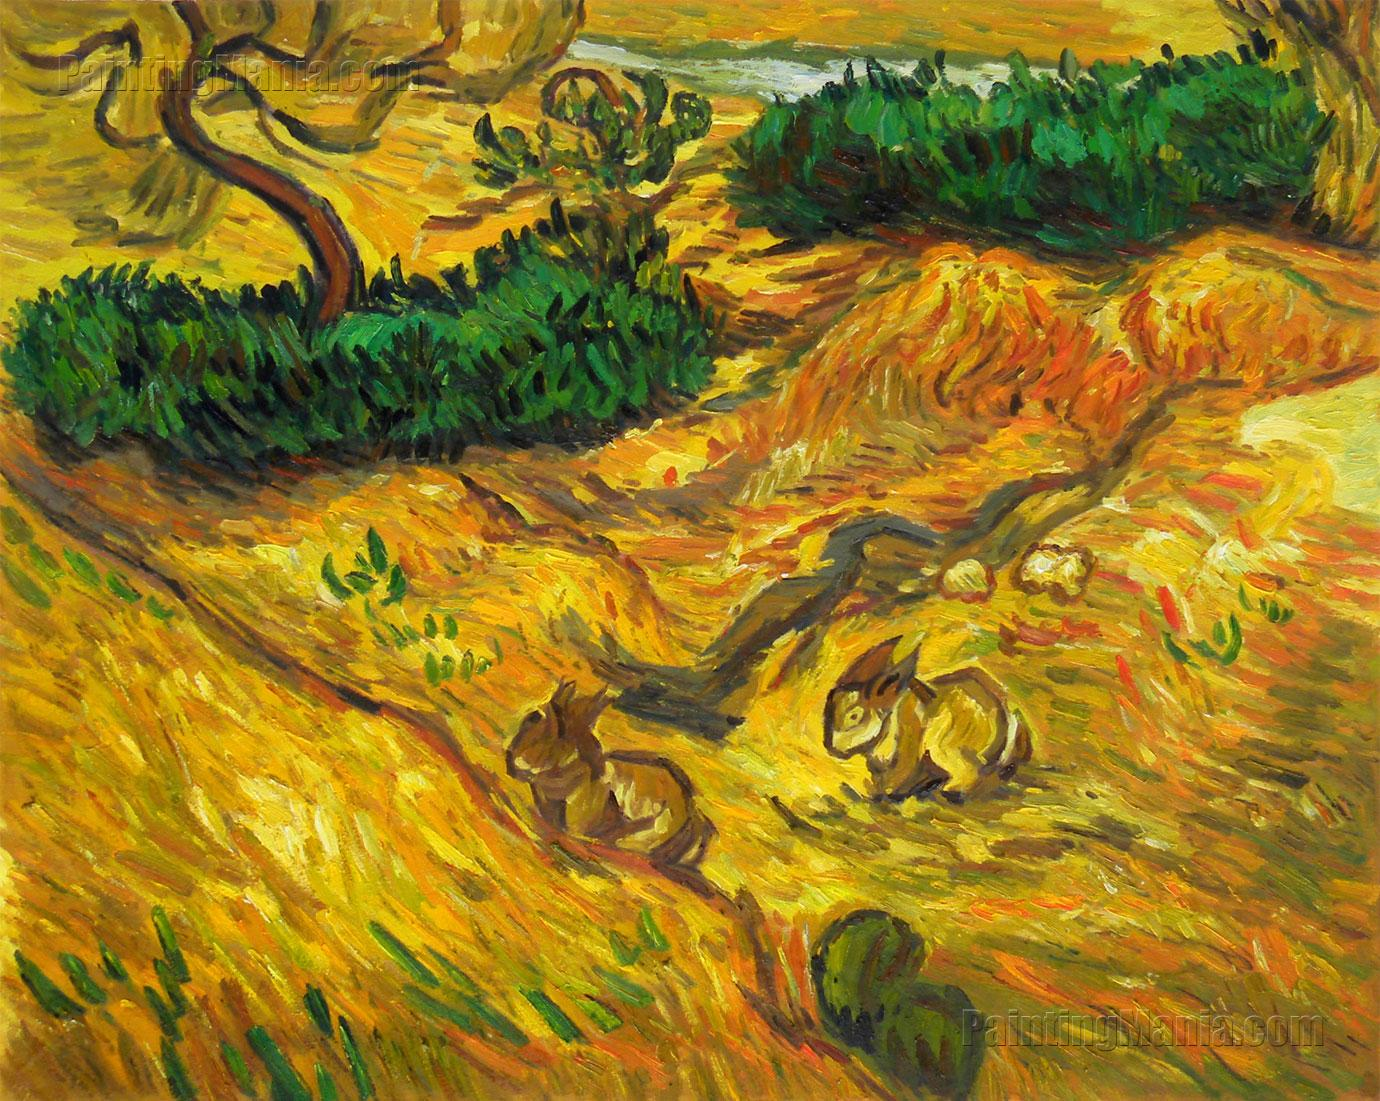 Field with Two Rabbits